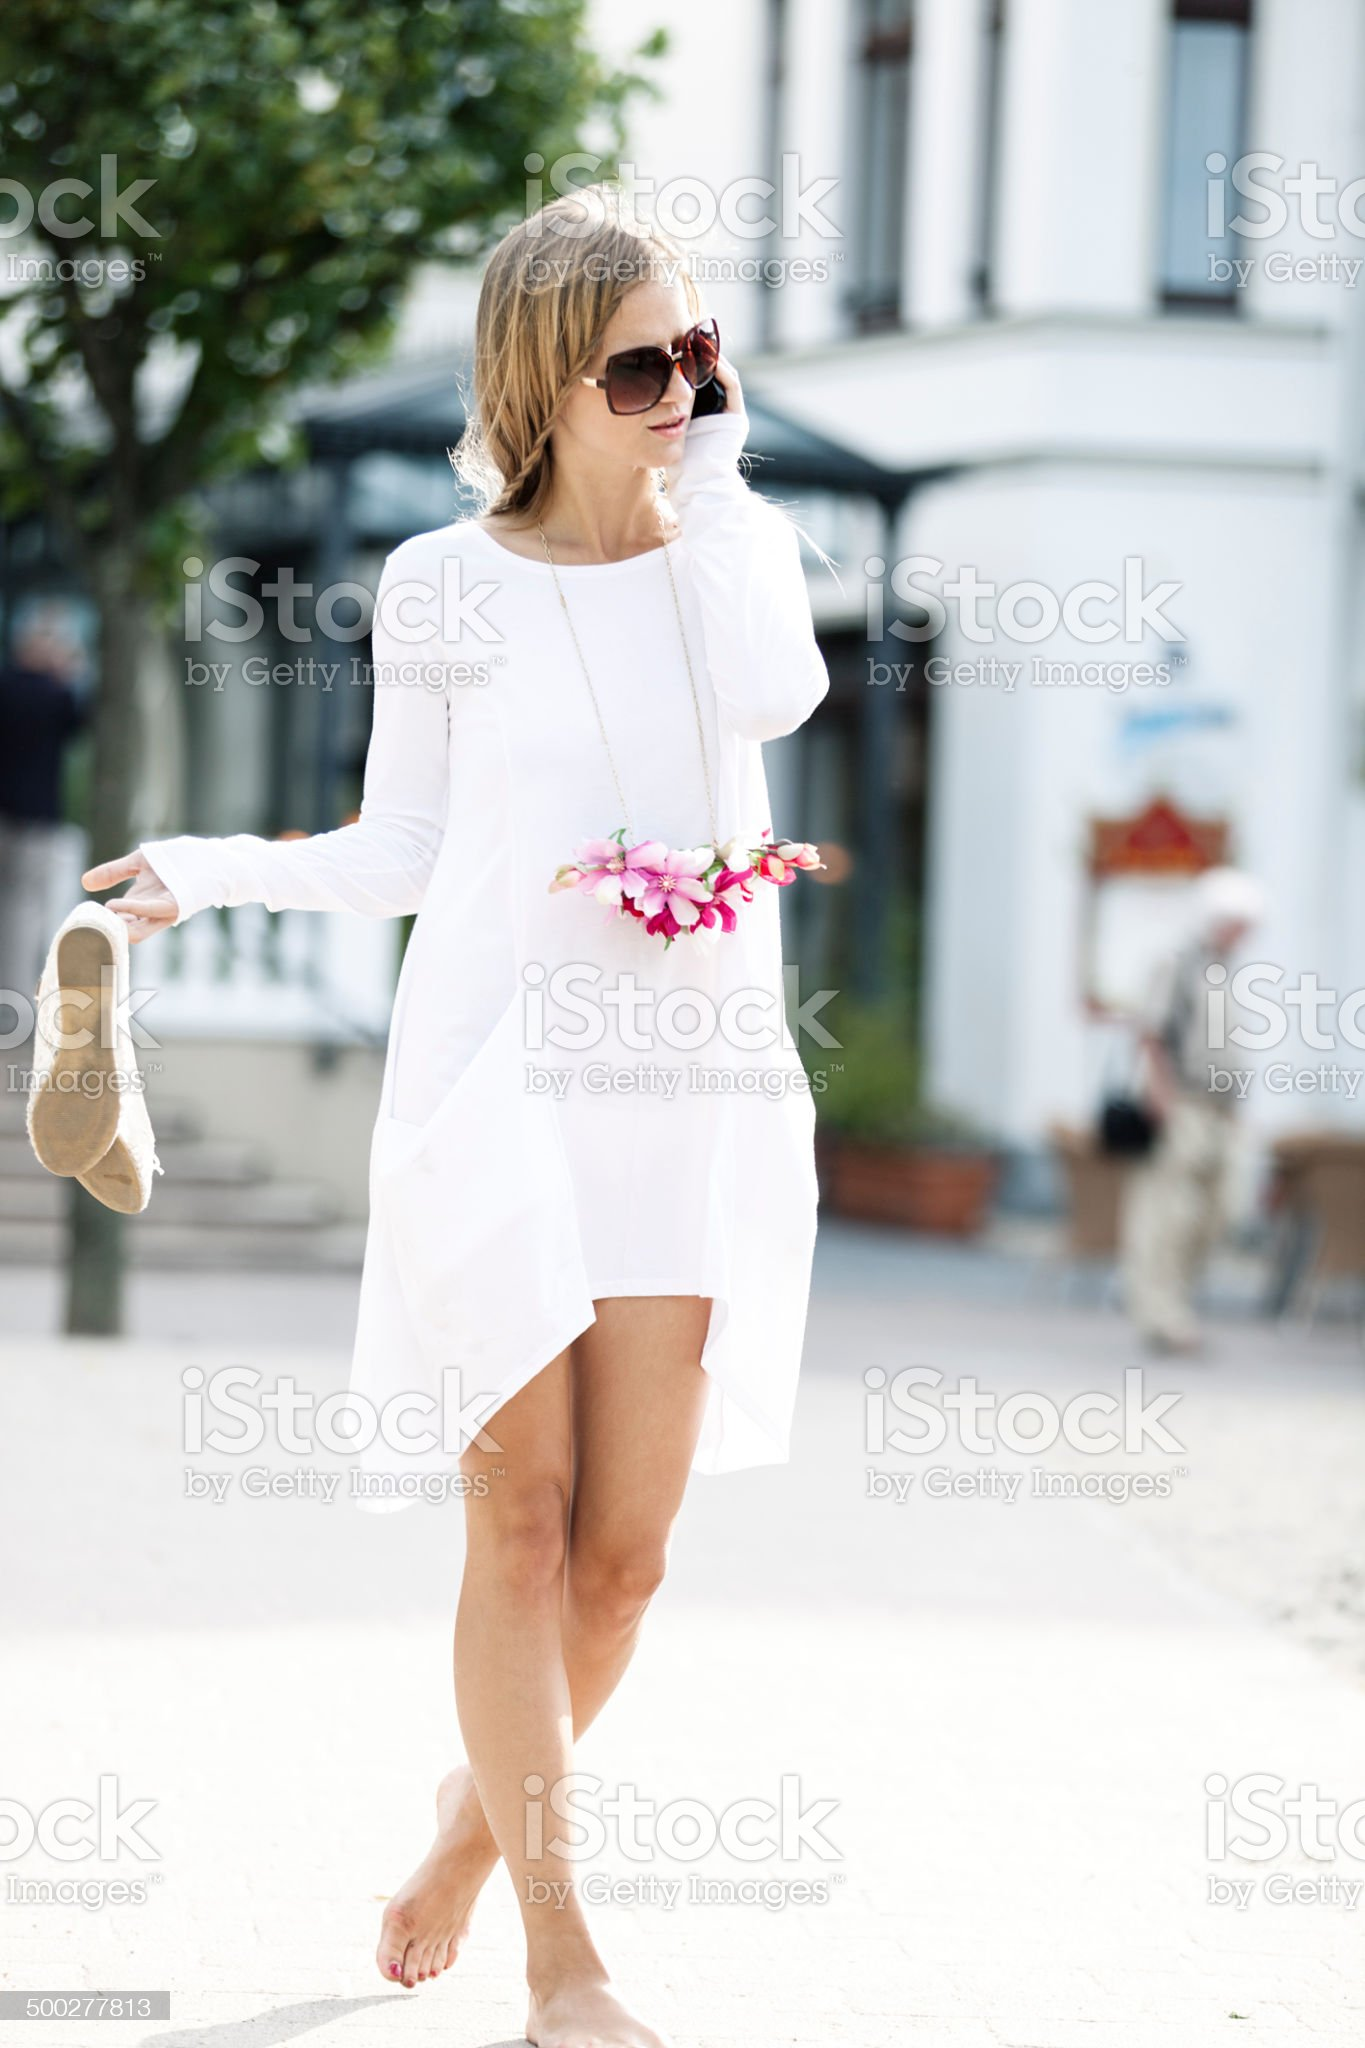 https://media.istockphoto.com/photos/attractive-woman-walking-on-street-picture-id500277813?s=2048x2048